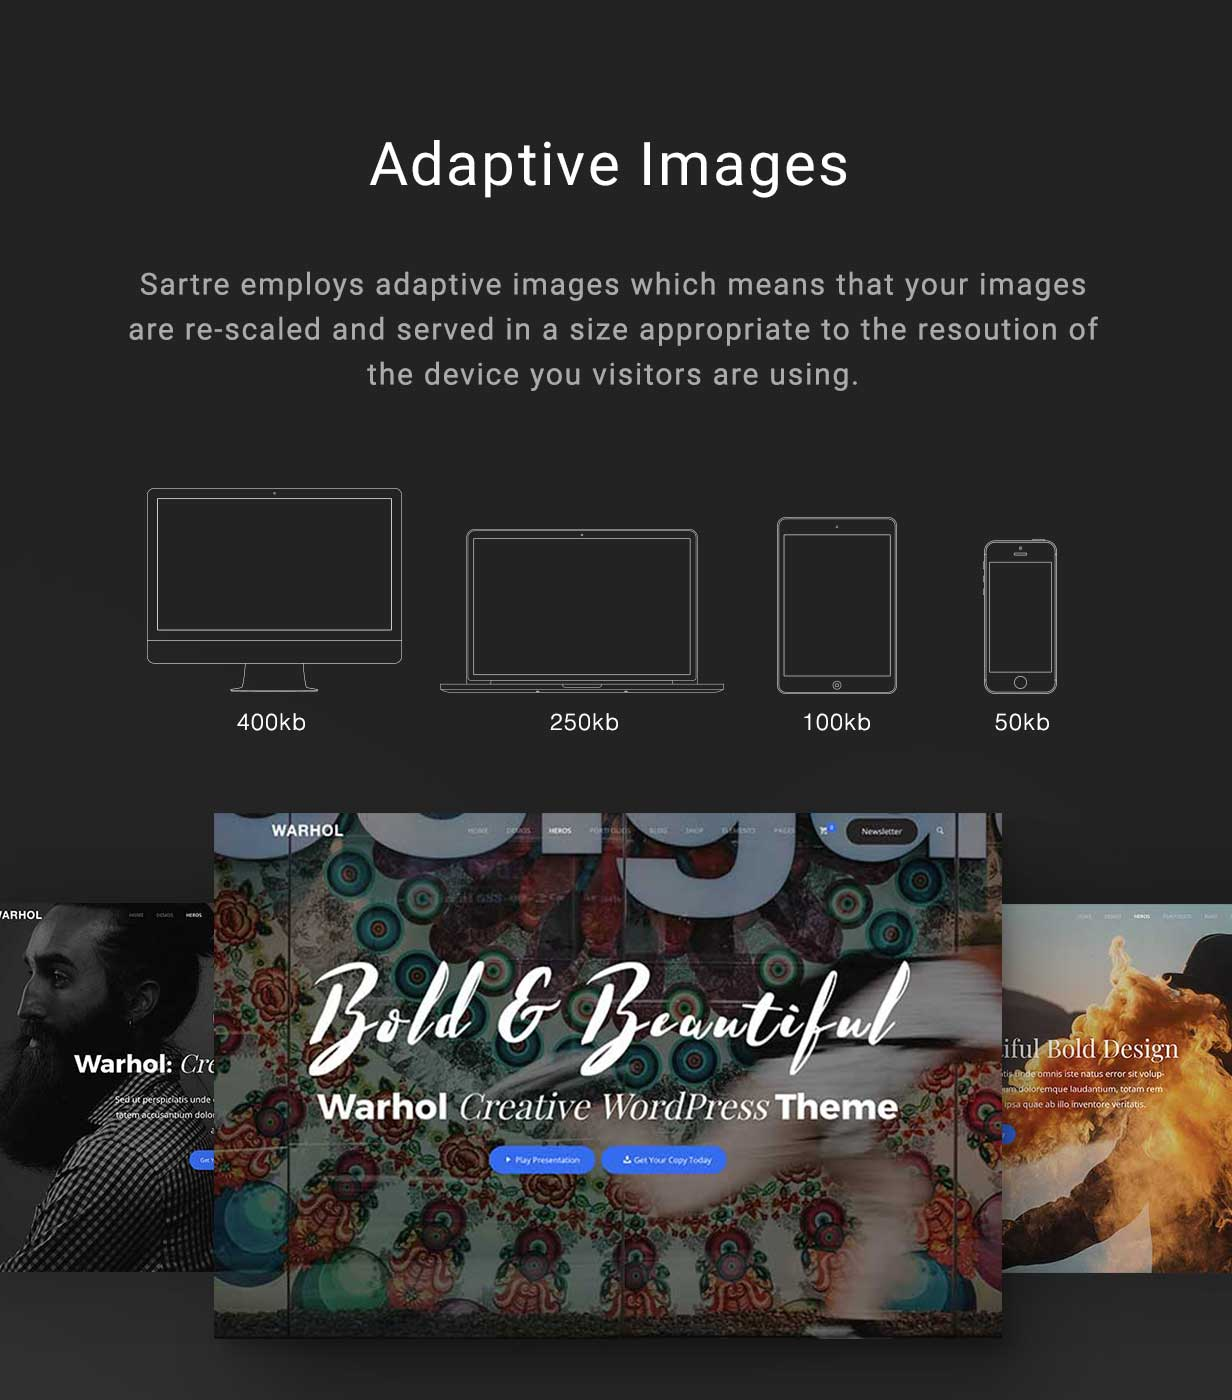 tf-profile-adaptive-images.jpg?version=1 Warhol - Responsive Multipurpose WordPress Theme for Creatives theme WordPress